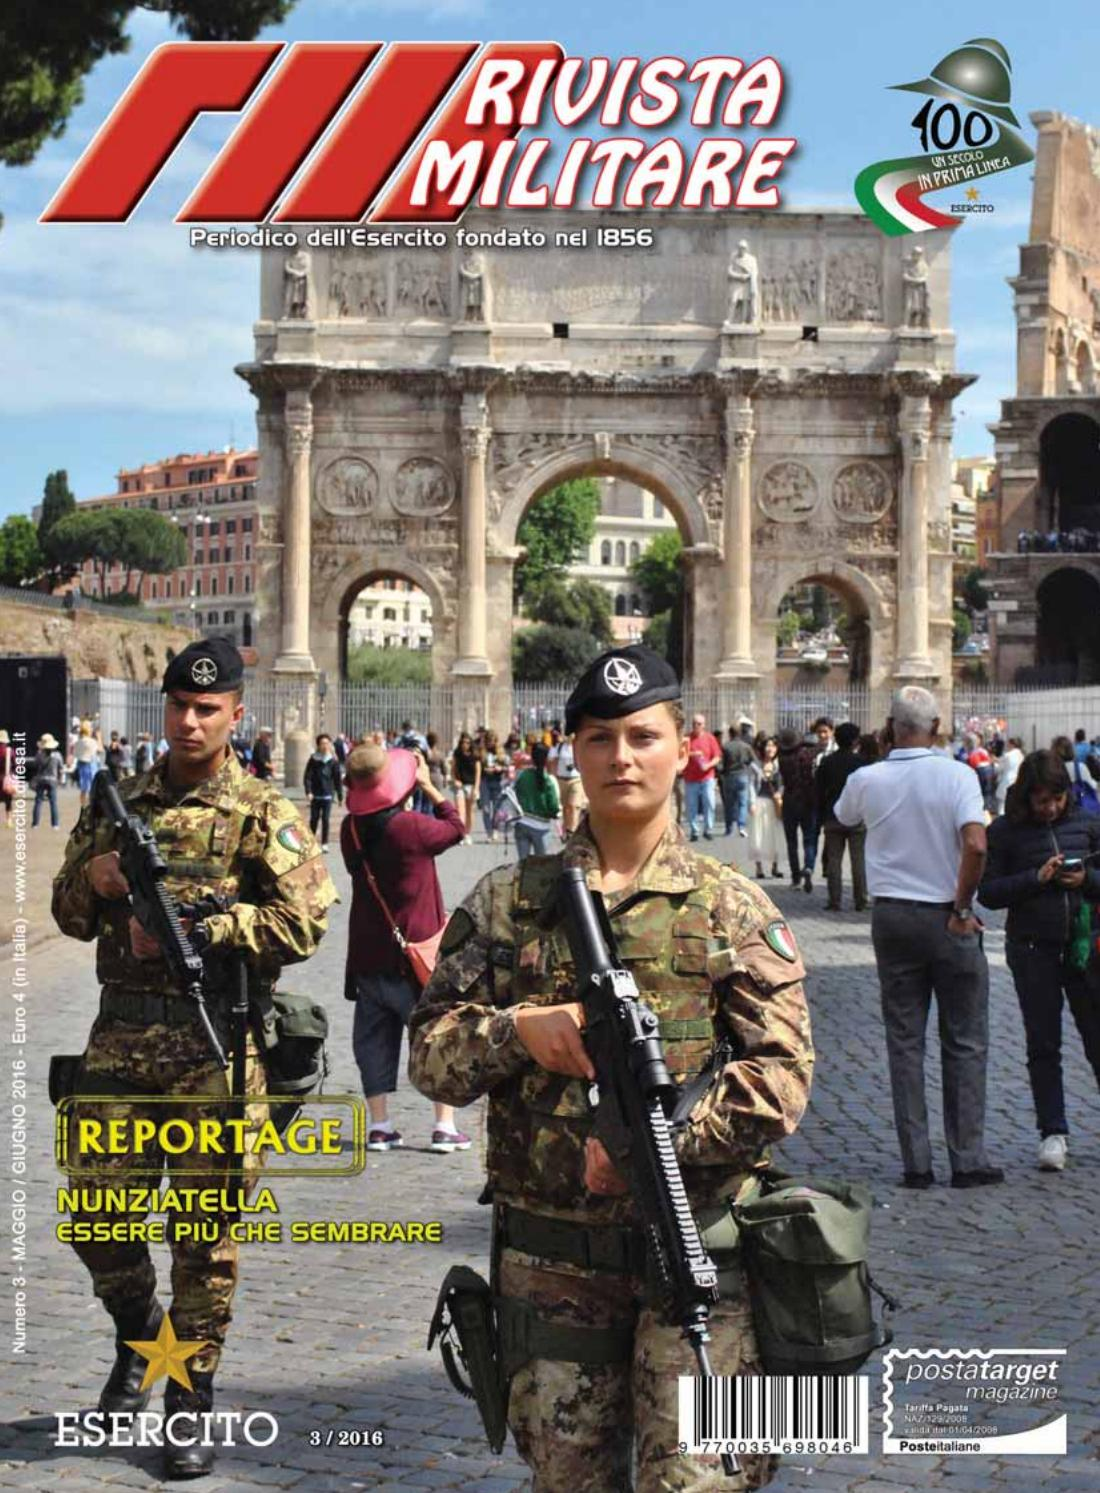 anni World battaglia dell/'esercito FINUL COMANDO POST HQ con 6 FIGURE MILITARI 3